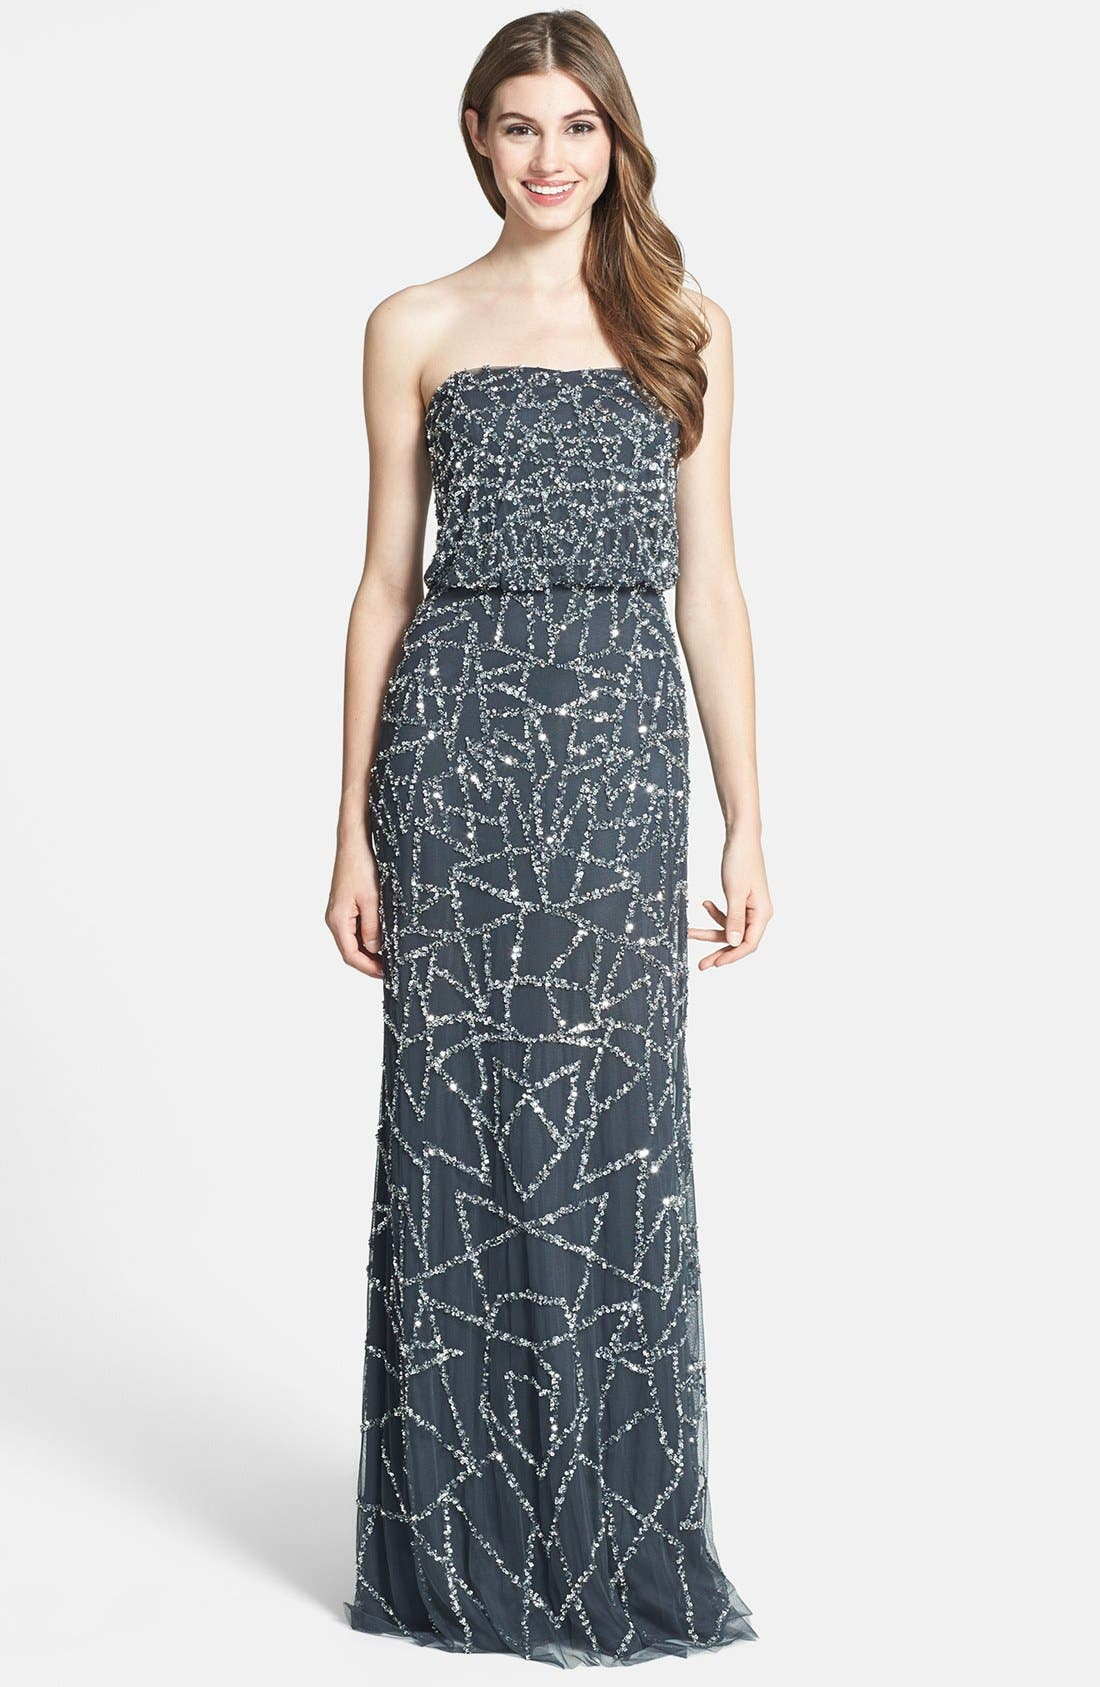 Alternate Image 1 Selected - Adrianna Papell Embellished Strapless Blouson Gown